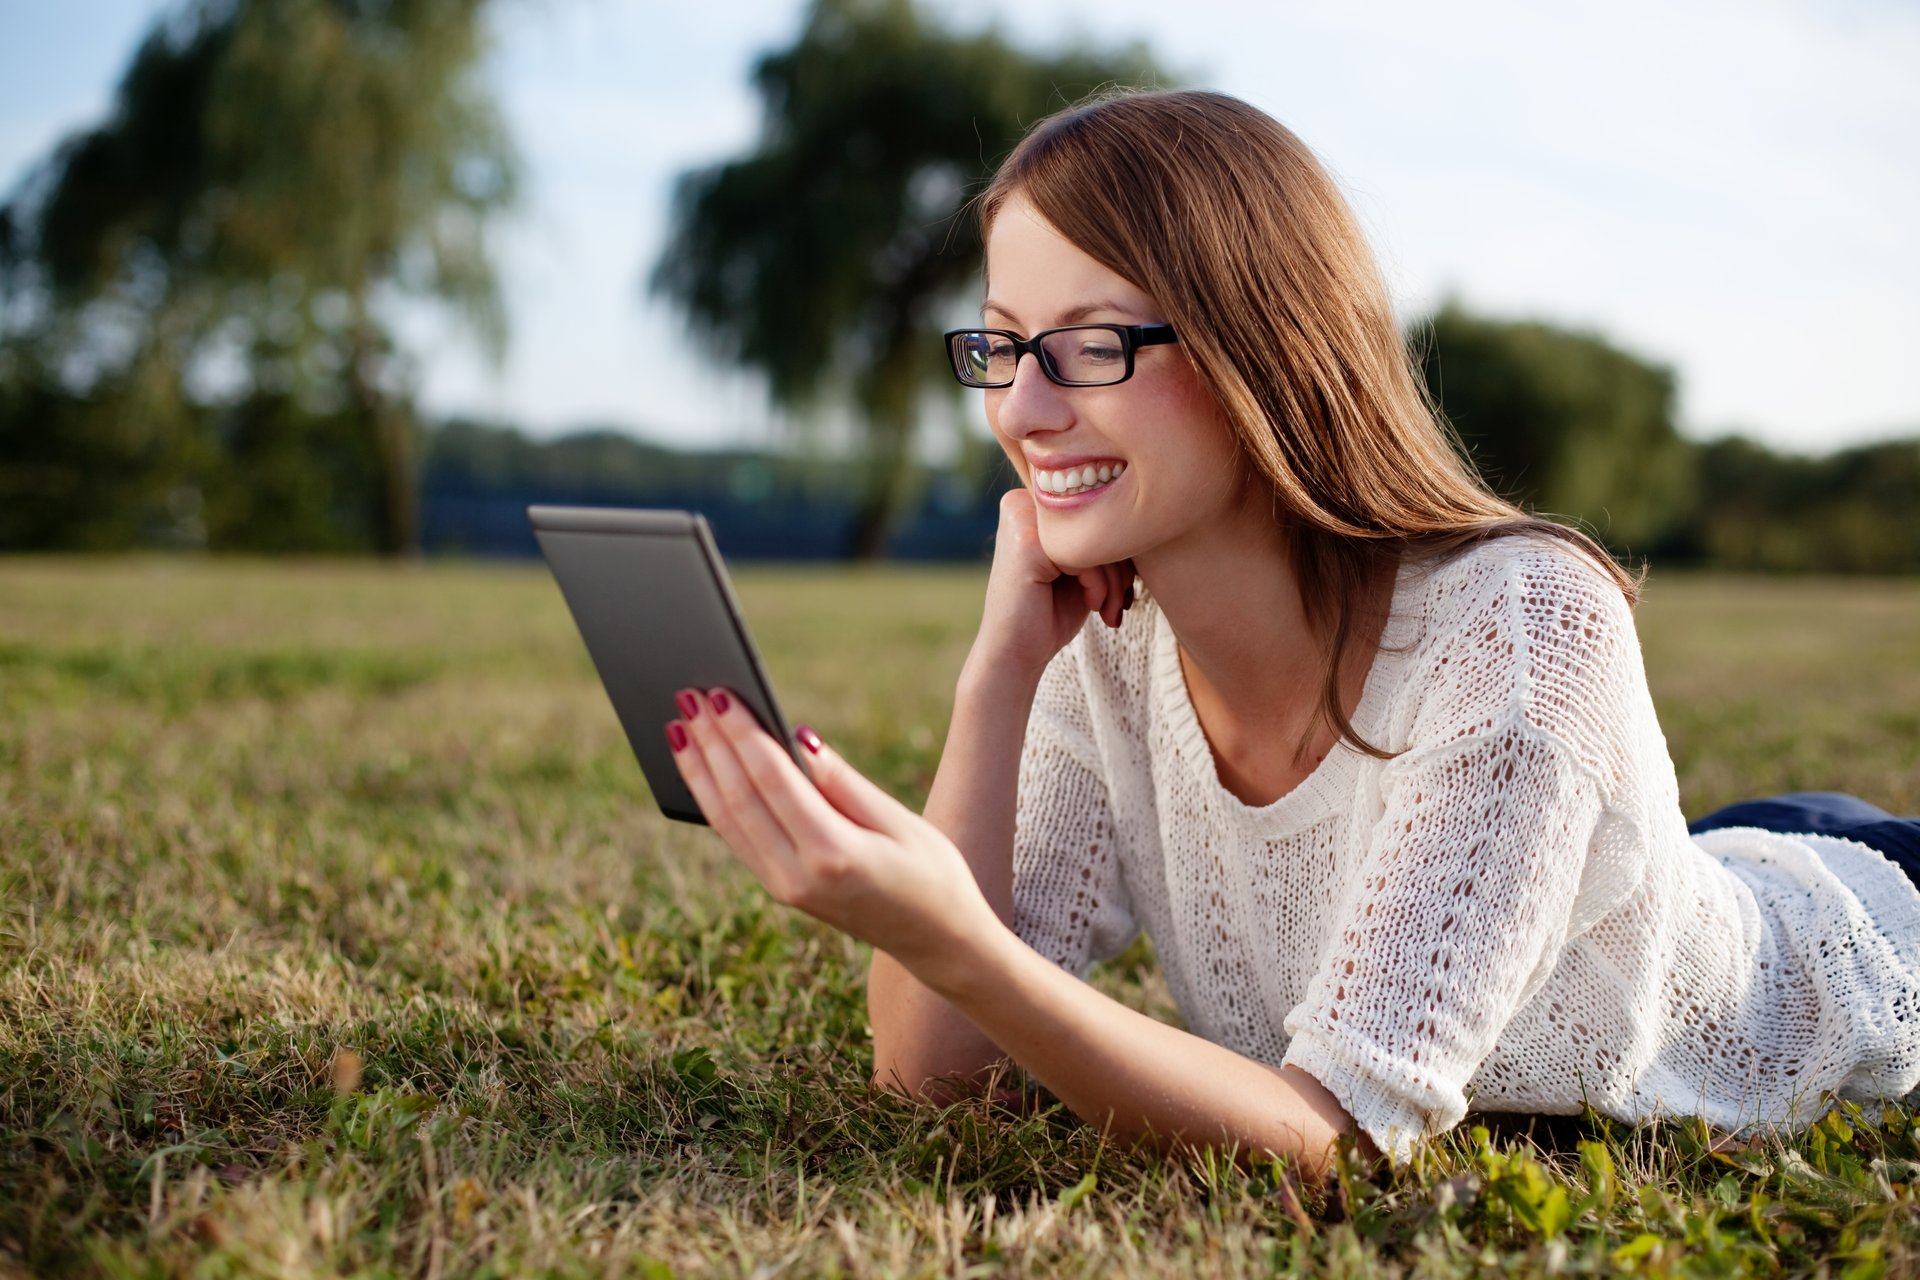 A woman smiles while enjoying reading an e-book on an e-reader and lying on the grass outside